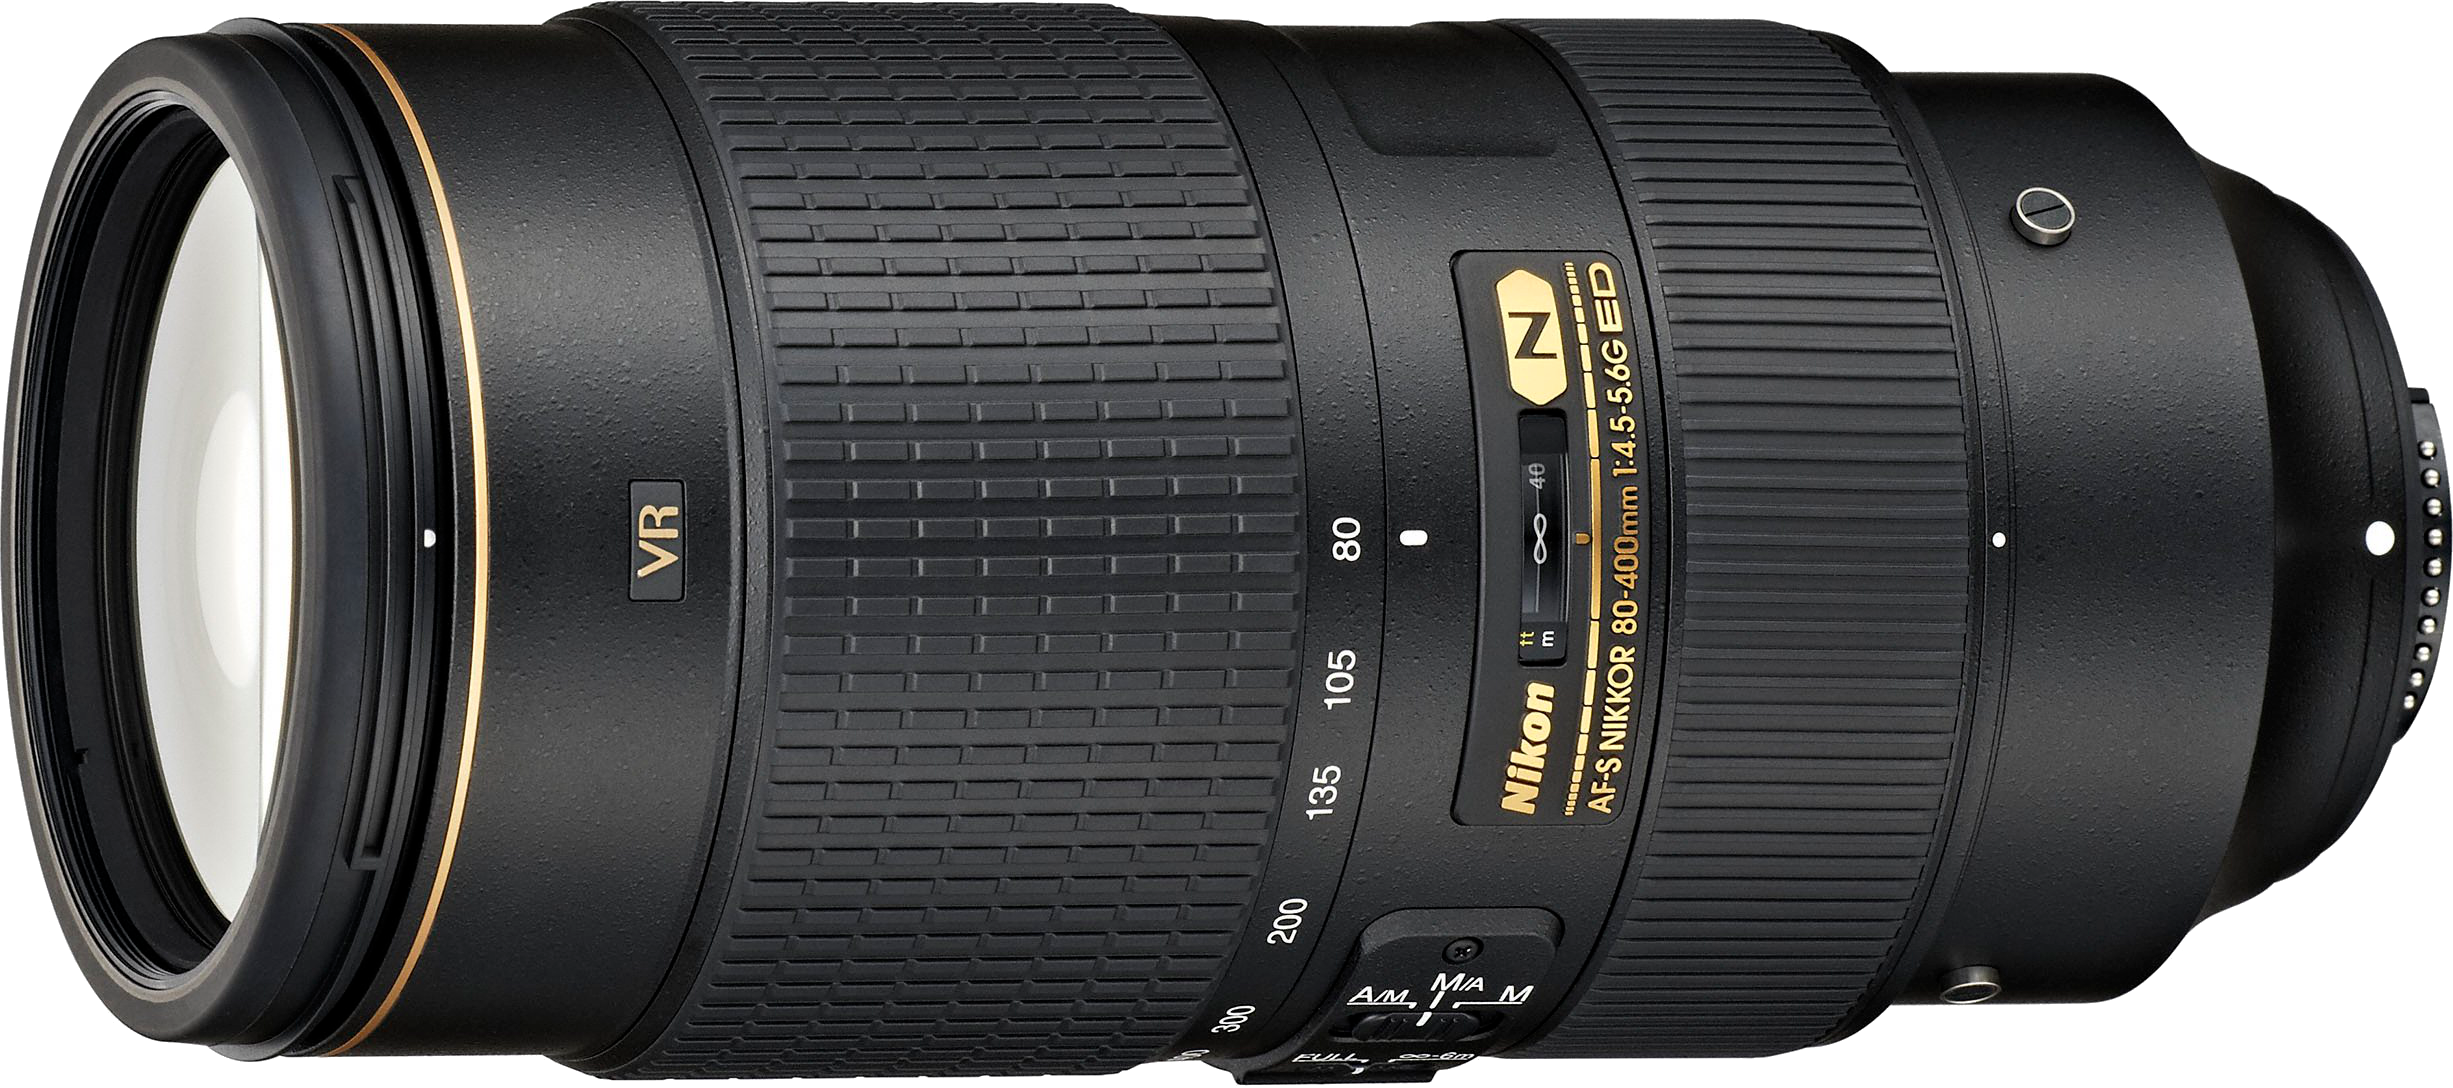 Nikon's new version of the 80-400mm with AF-S focusing motor that works with all DSLRs